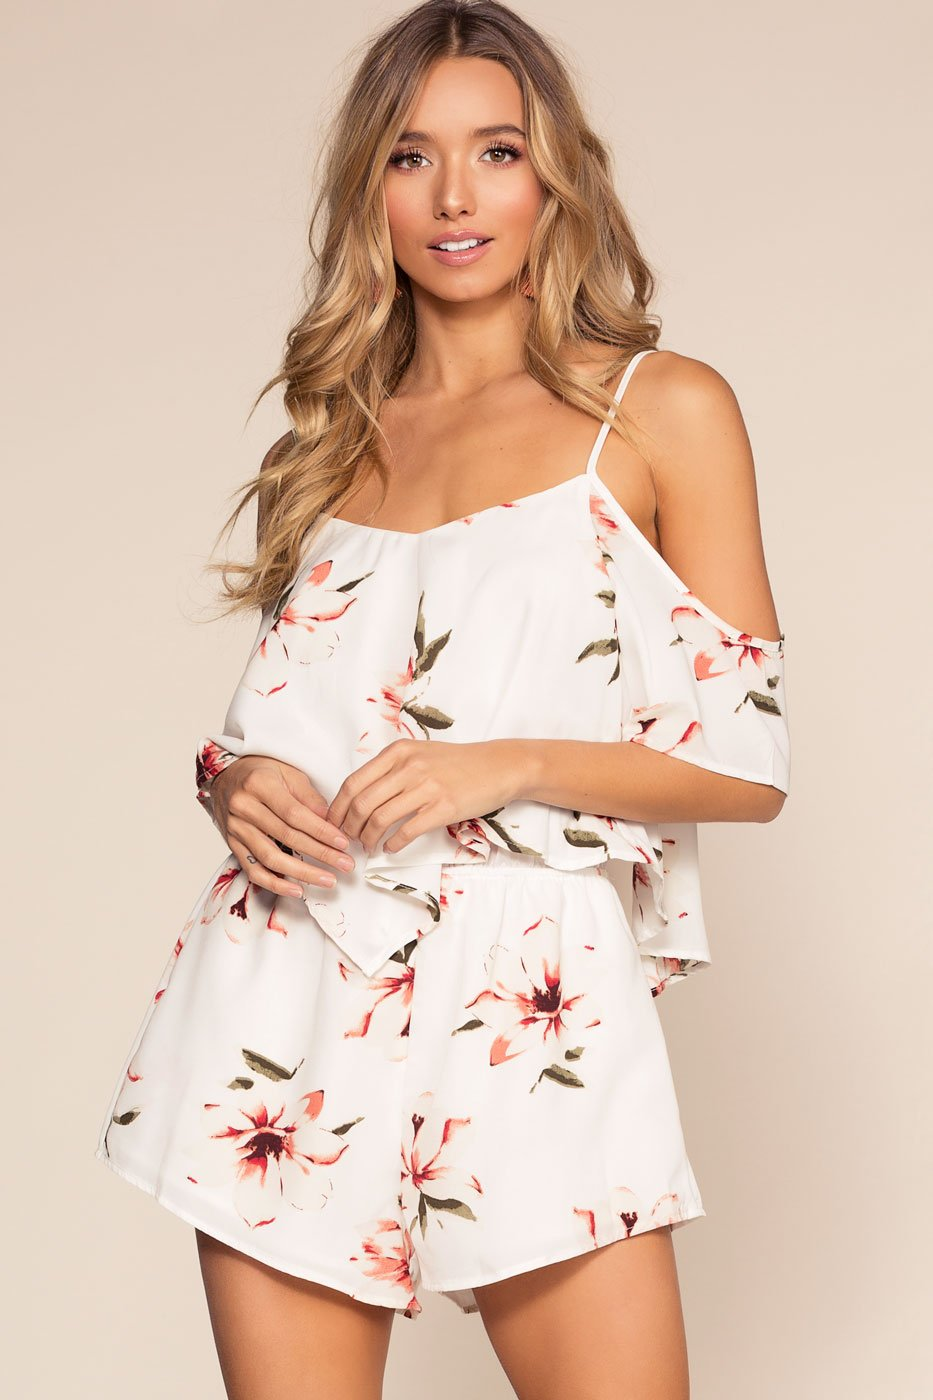 207cb4f0a0c0 Spring Oasis Floral Romper - Ivory | cozy casual